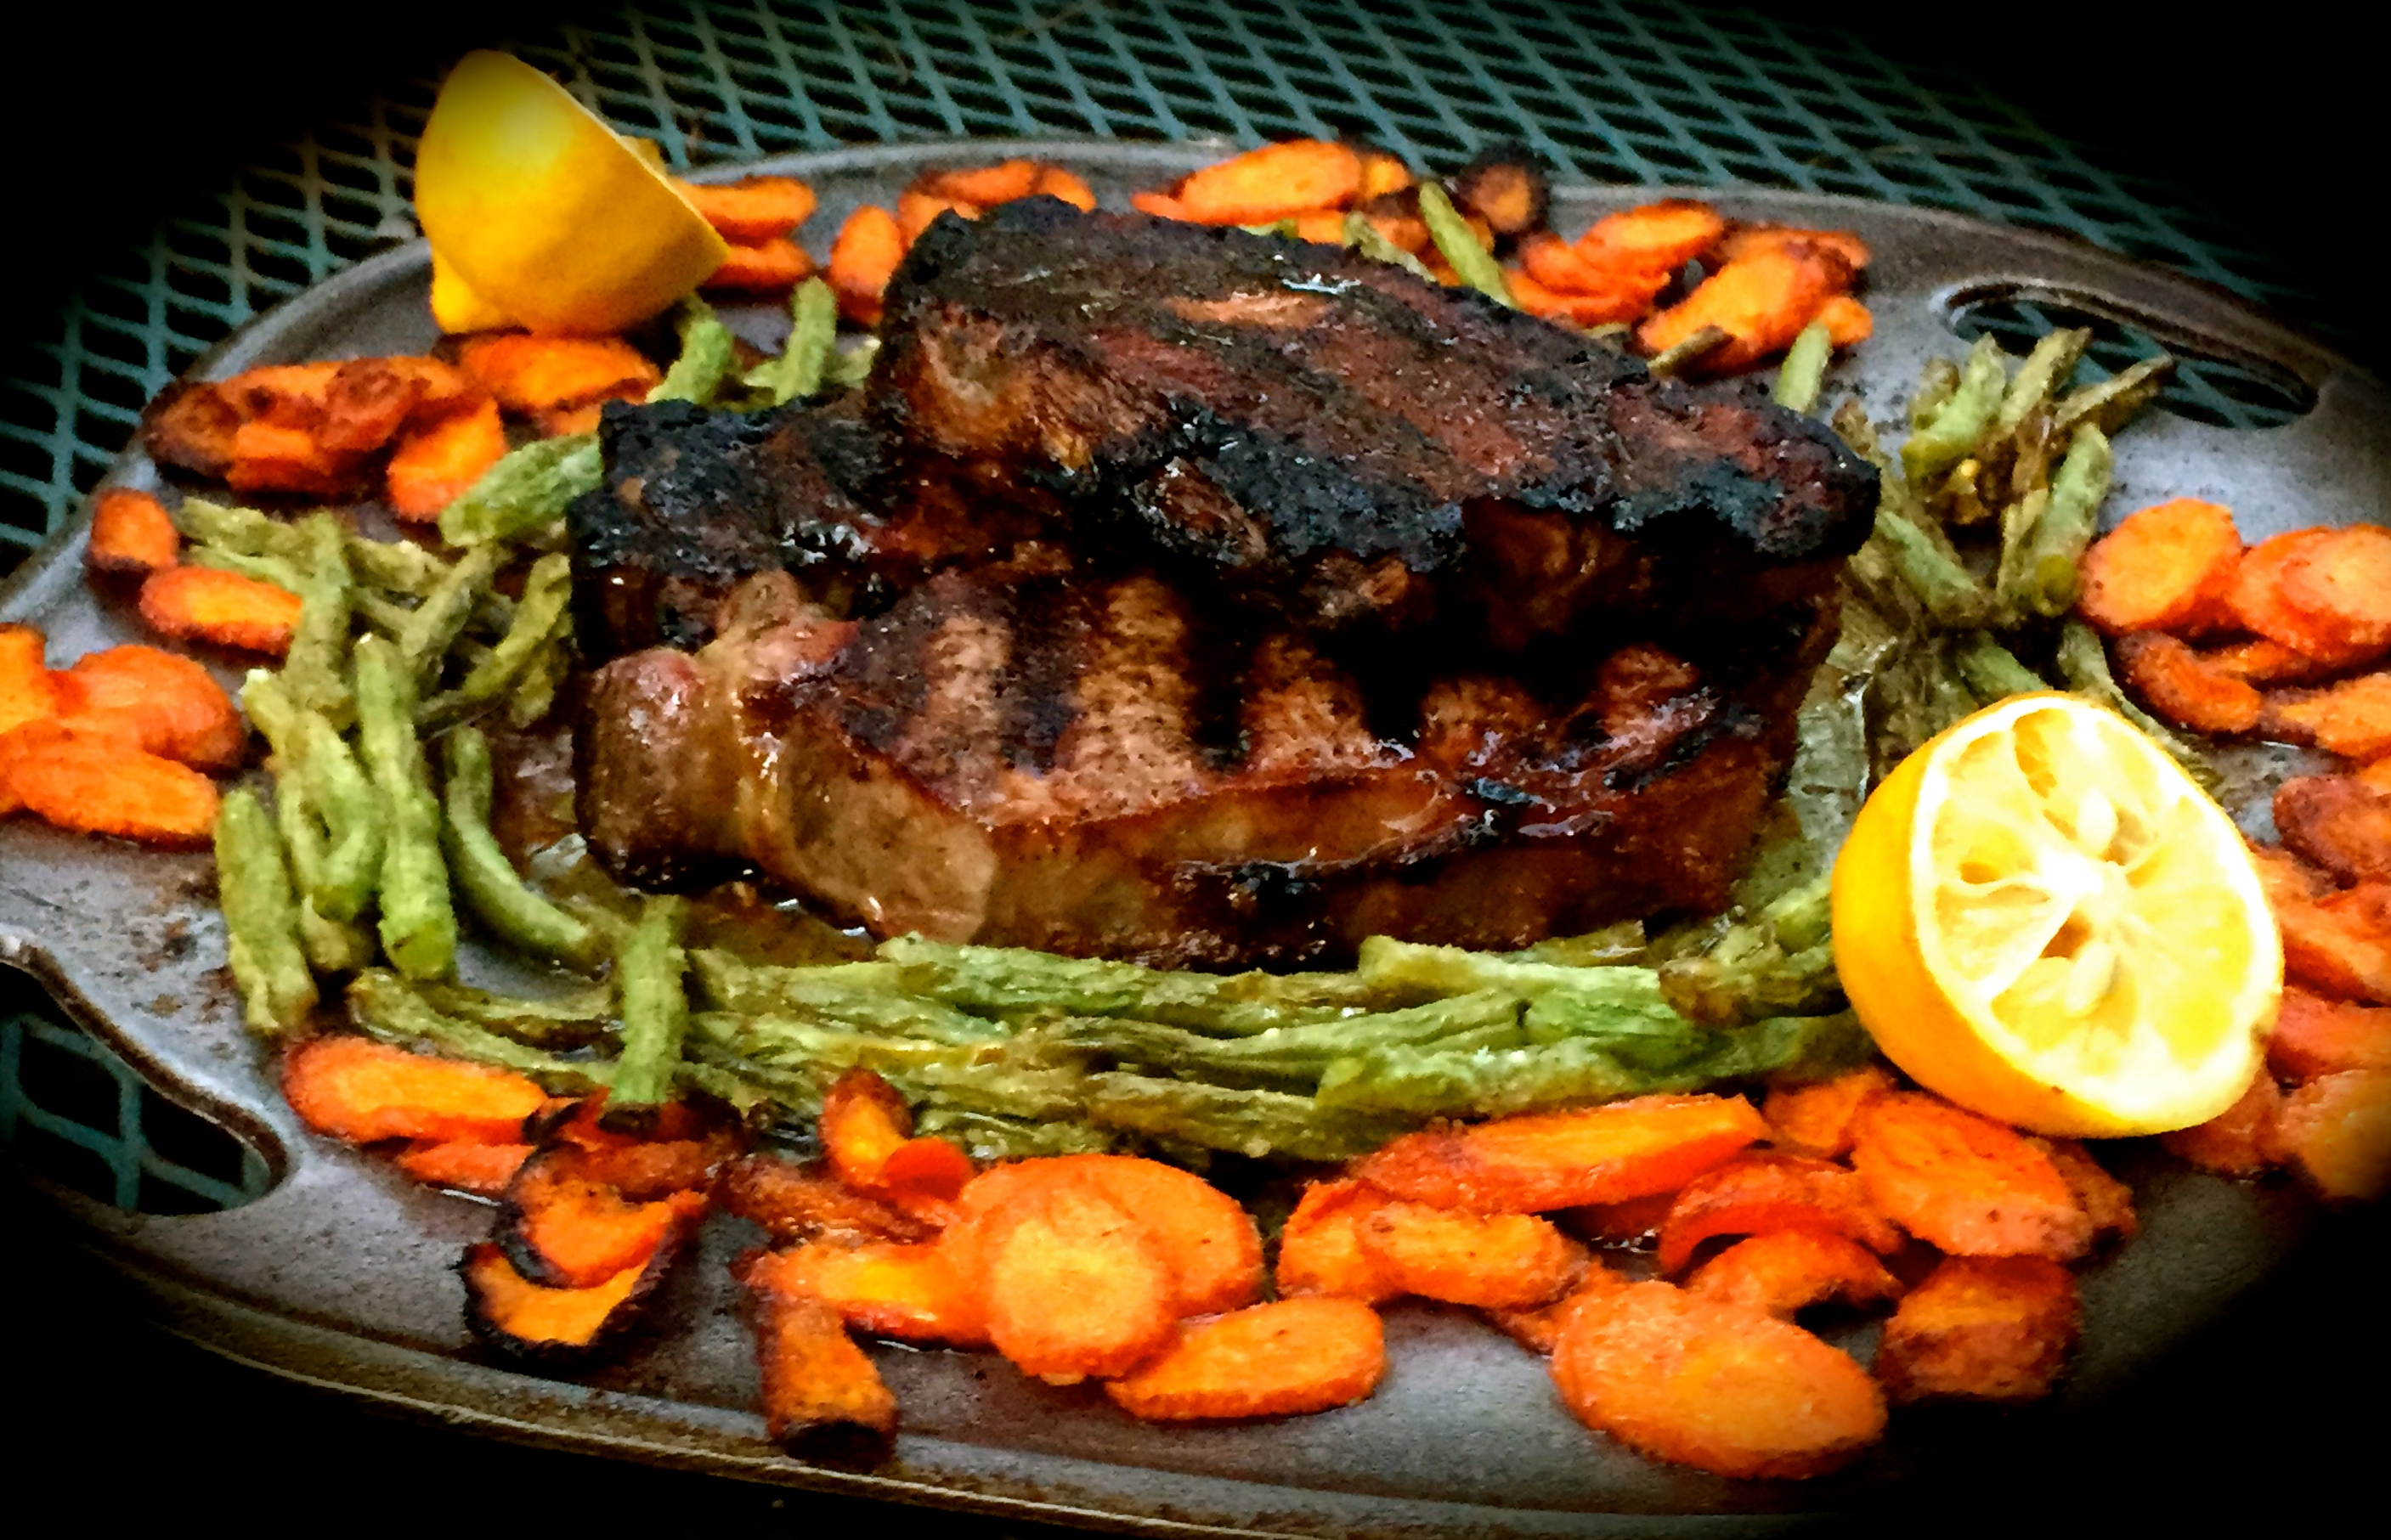 new york strip steak with sautéed carrots and green beans